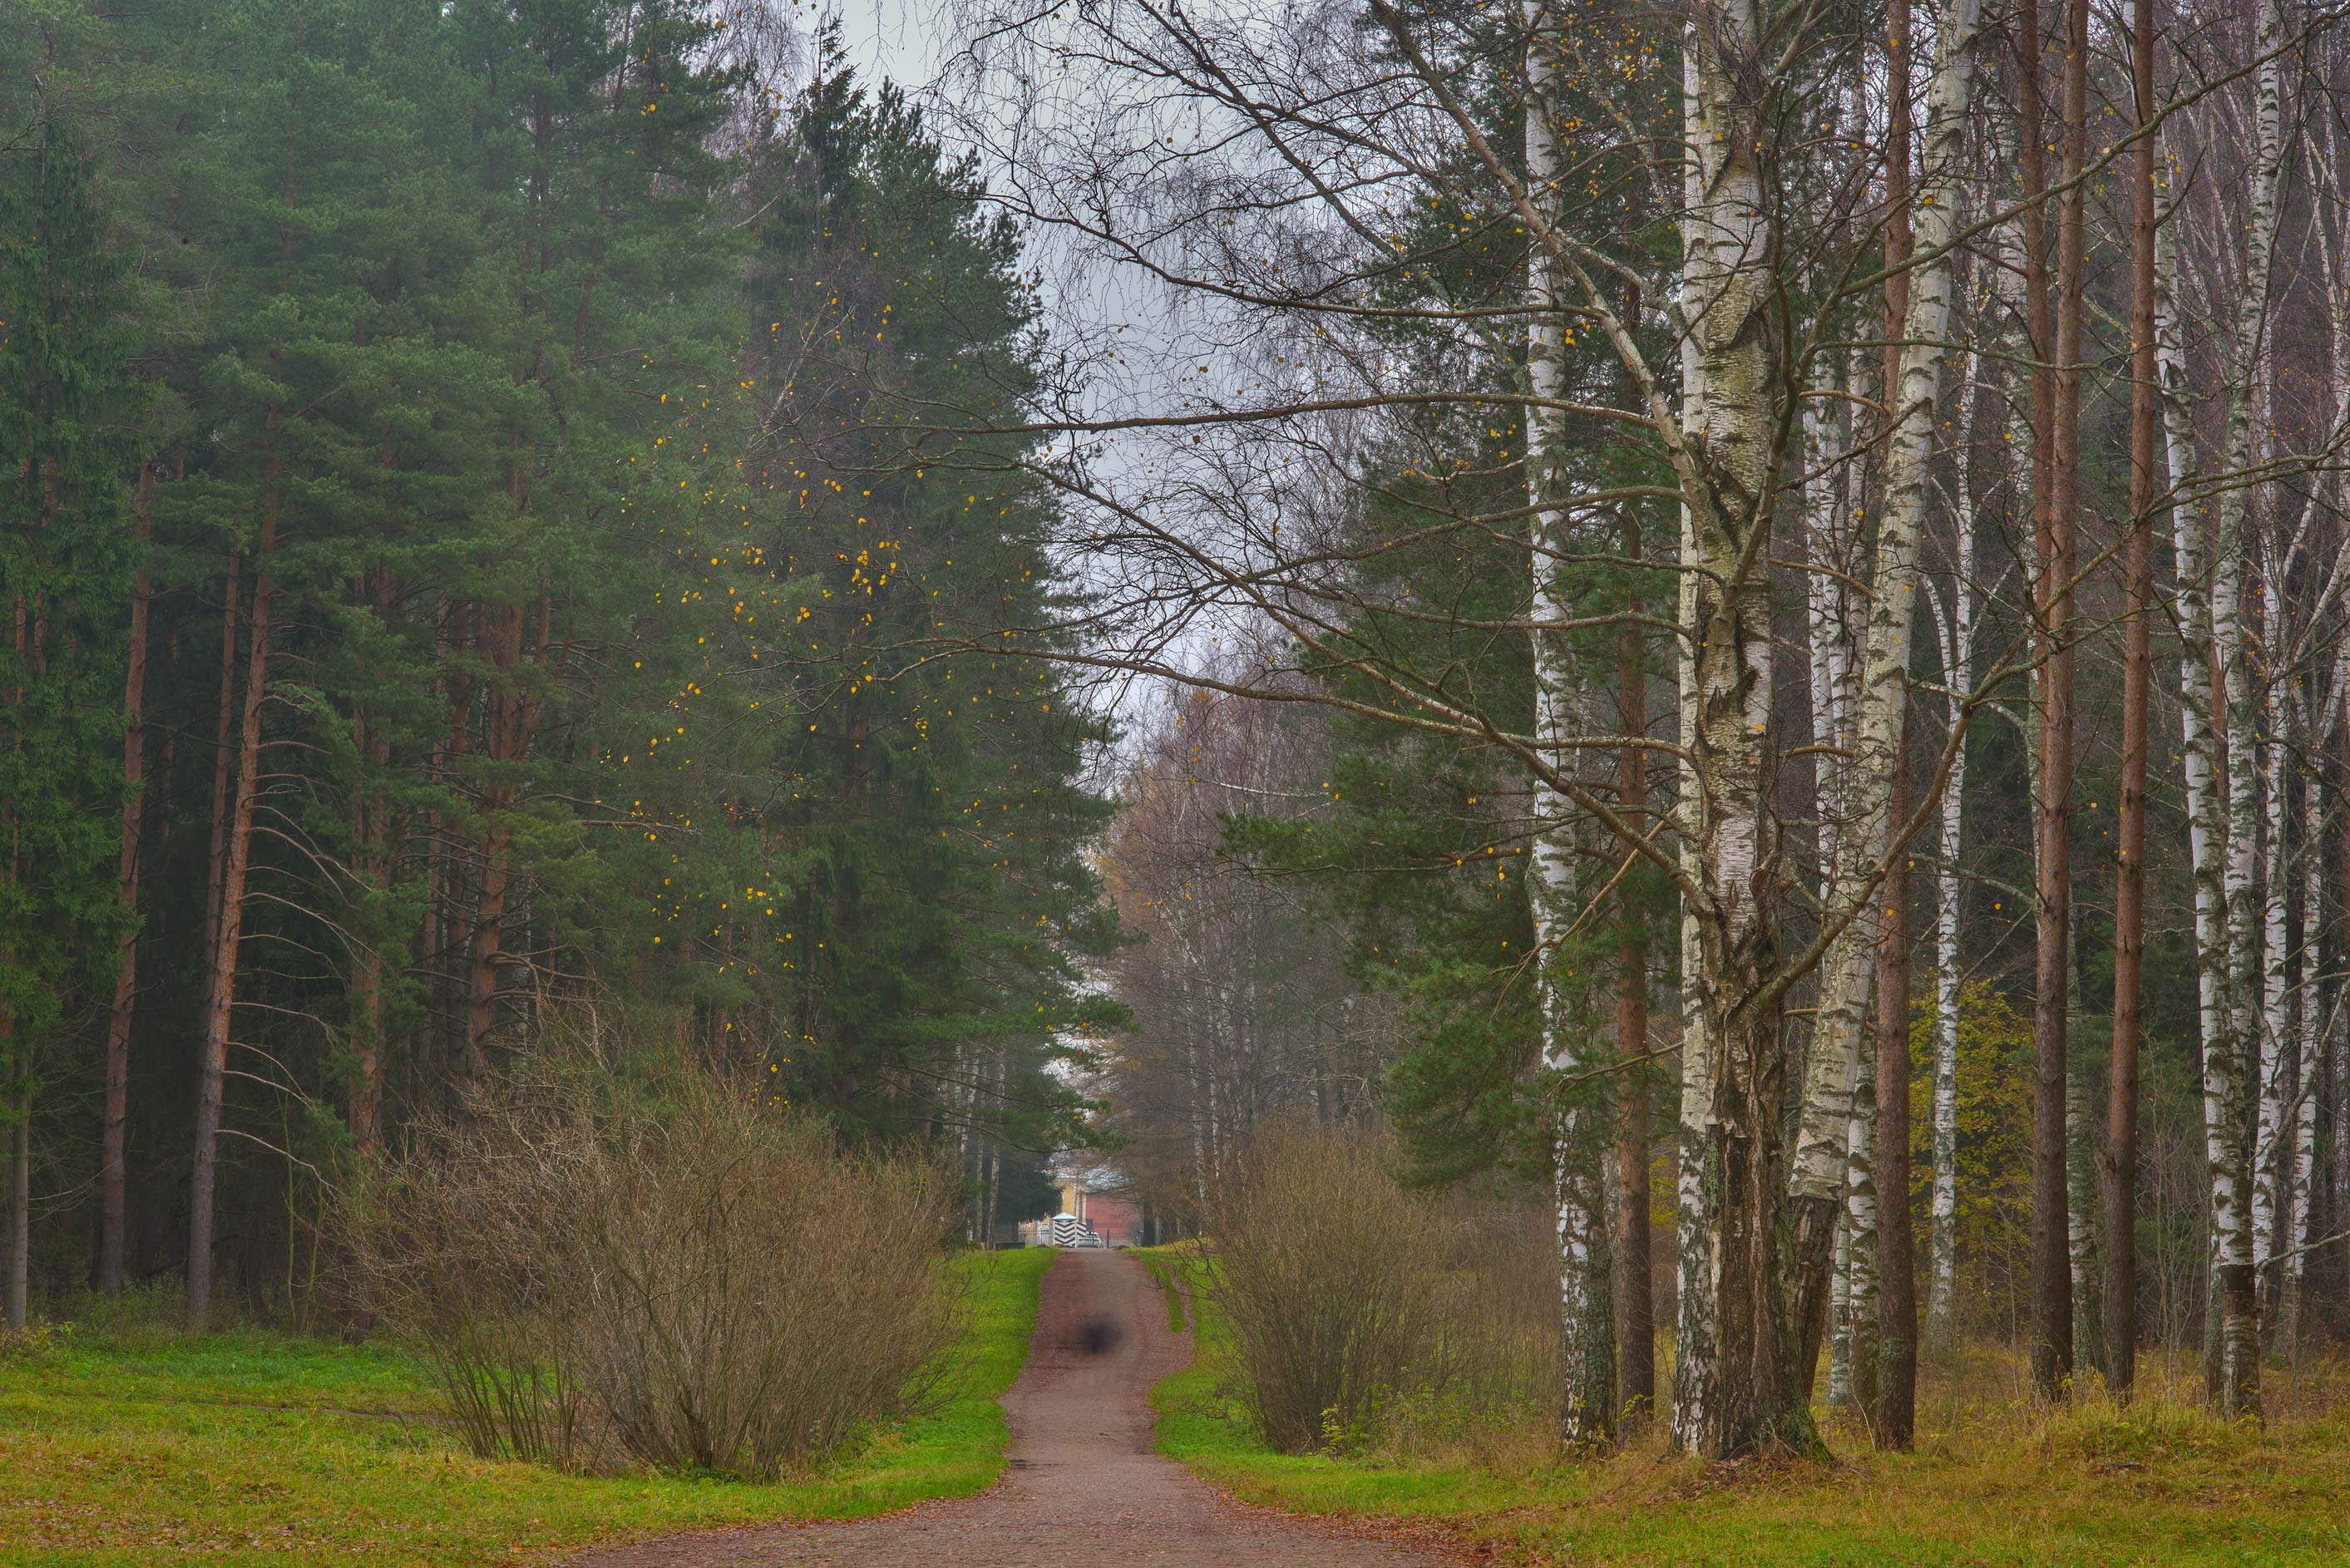 Forest around Krasnogo Solntsa Alley in Pavlovsk...suburb of St.Petersburg, Russia